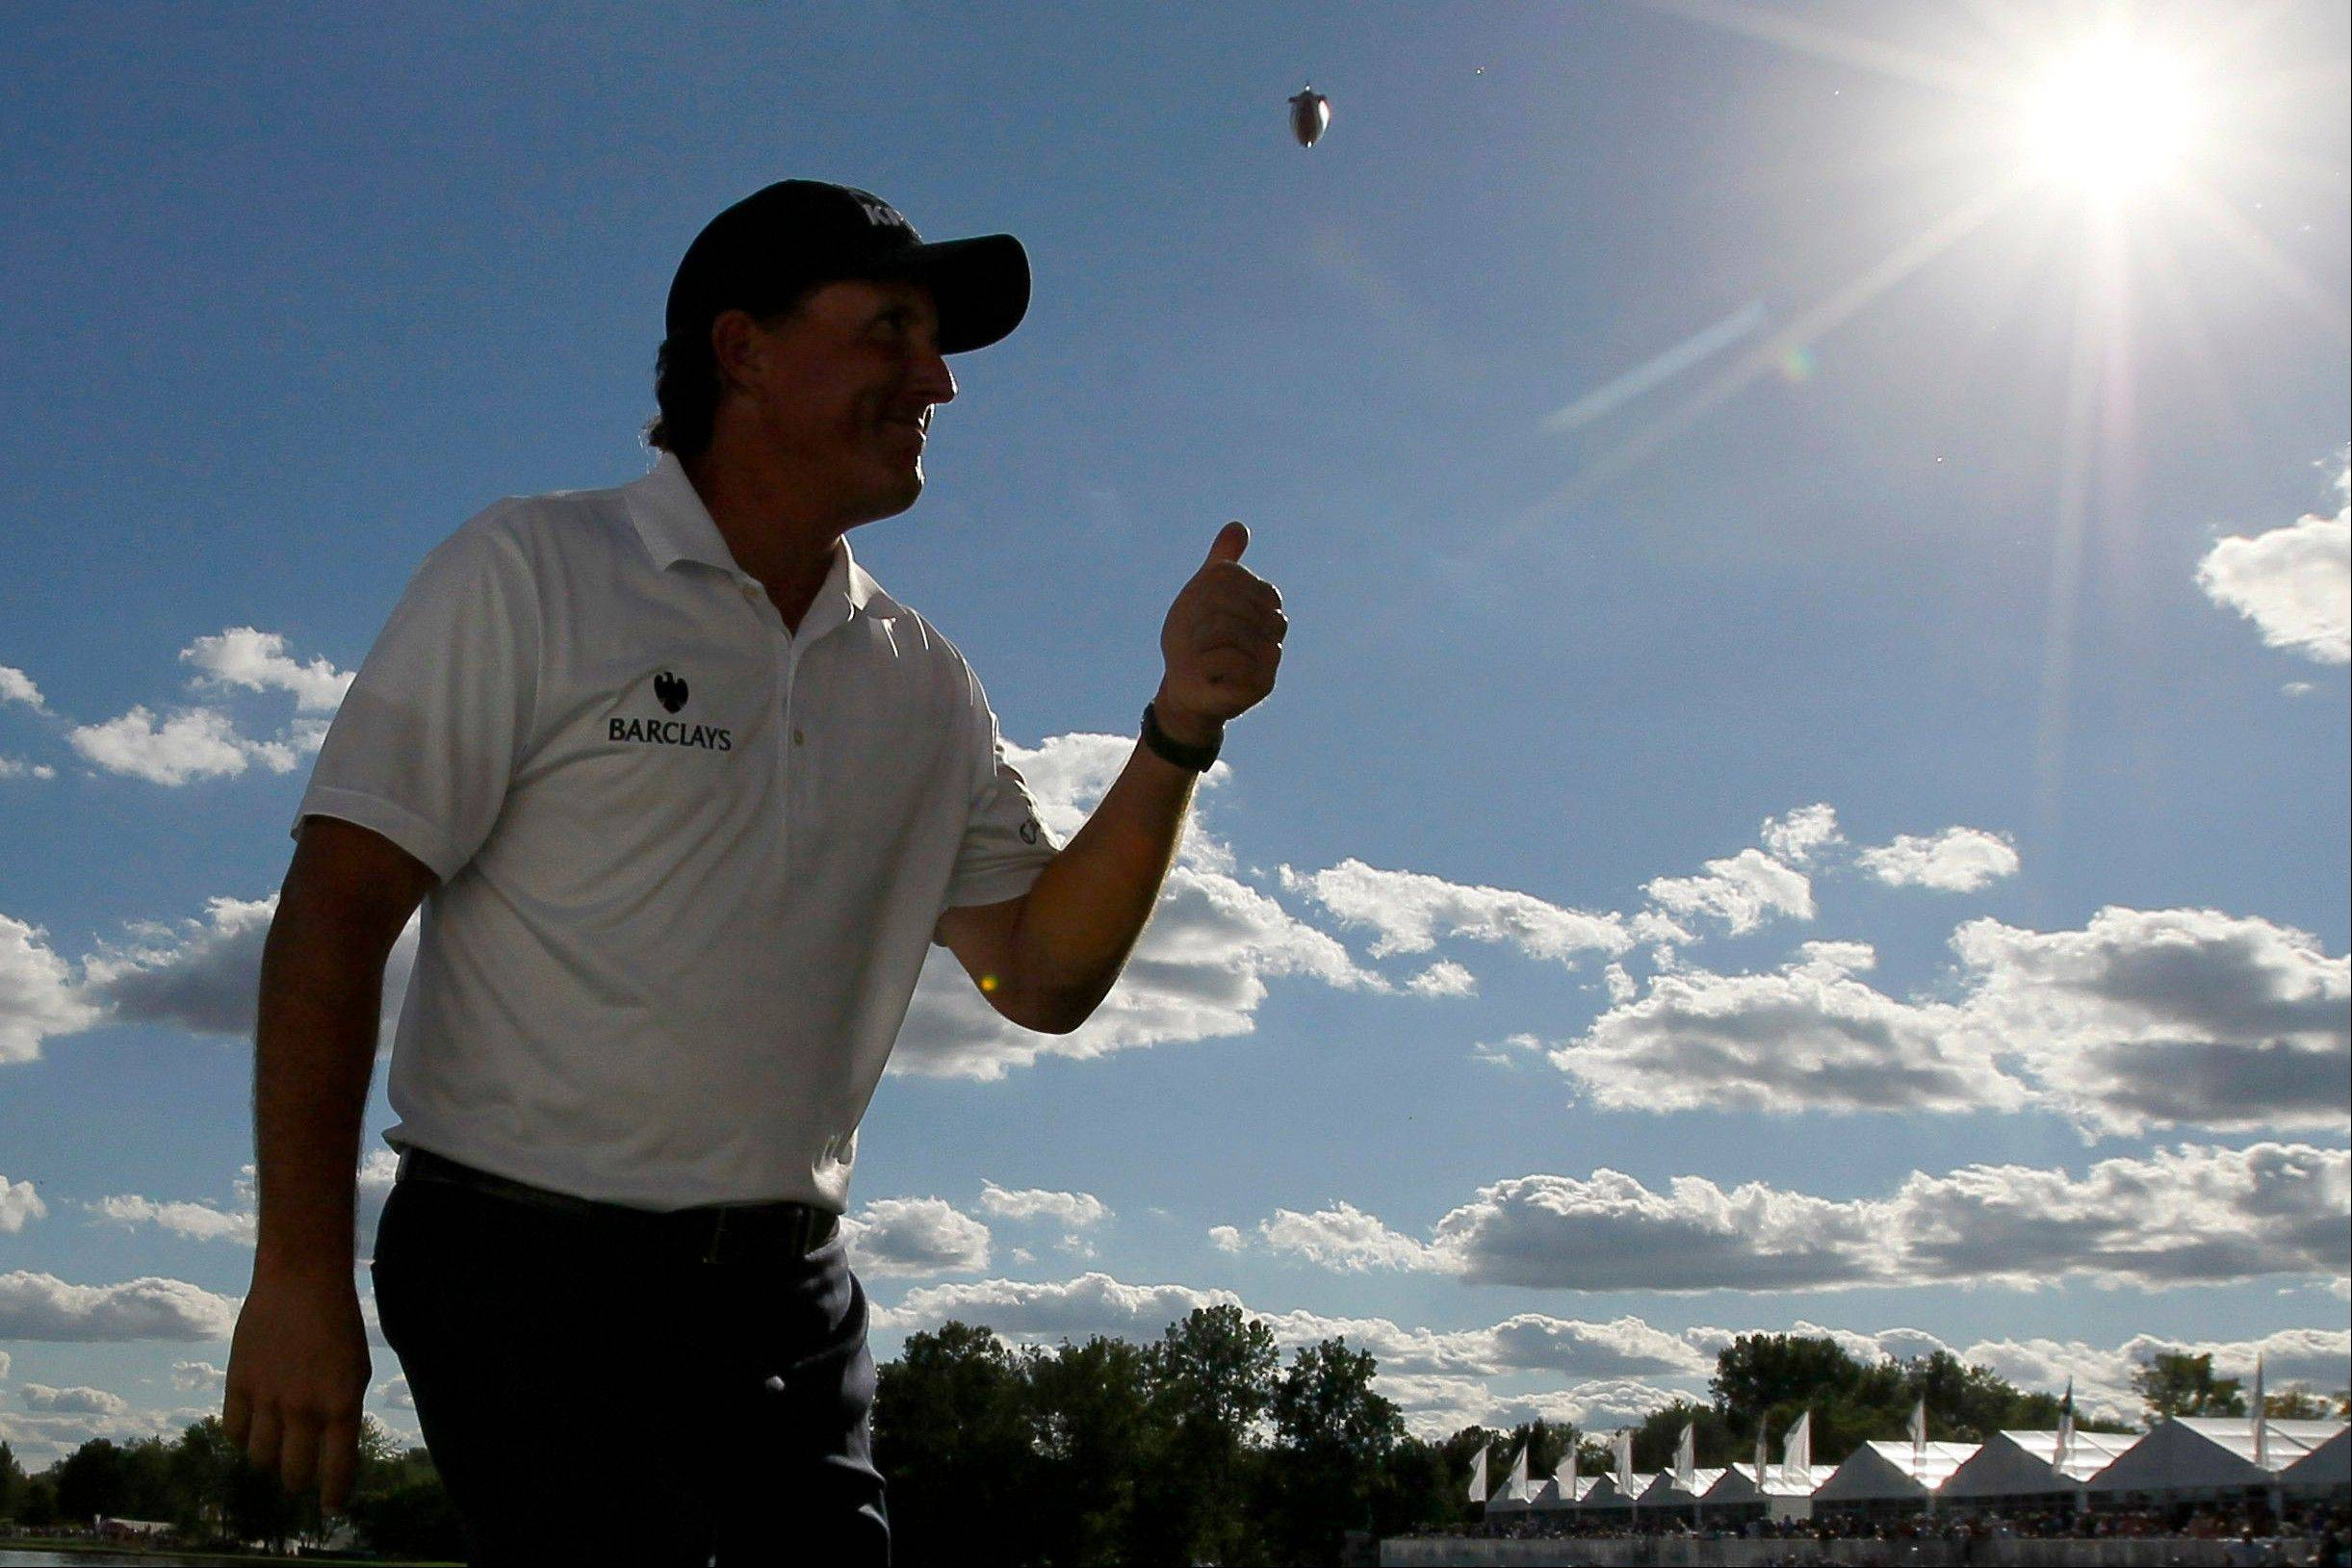 Phil Mickelson acknowledges the crowd with a thumbs-up after he birdied the 18th hole Saturday during the third round of the BMW Championship PGA golf tournament at Crooked Stick Golf Club in Carmel, Ind.